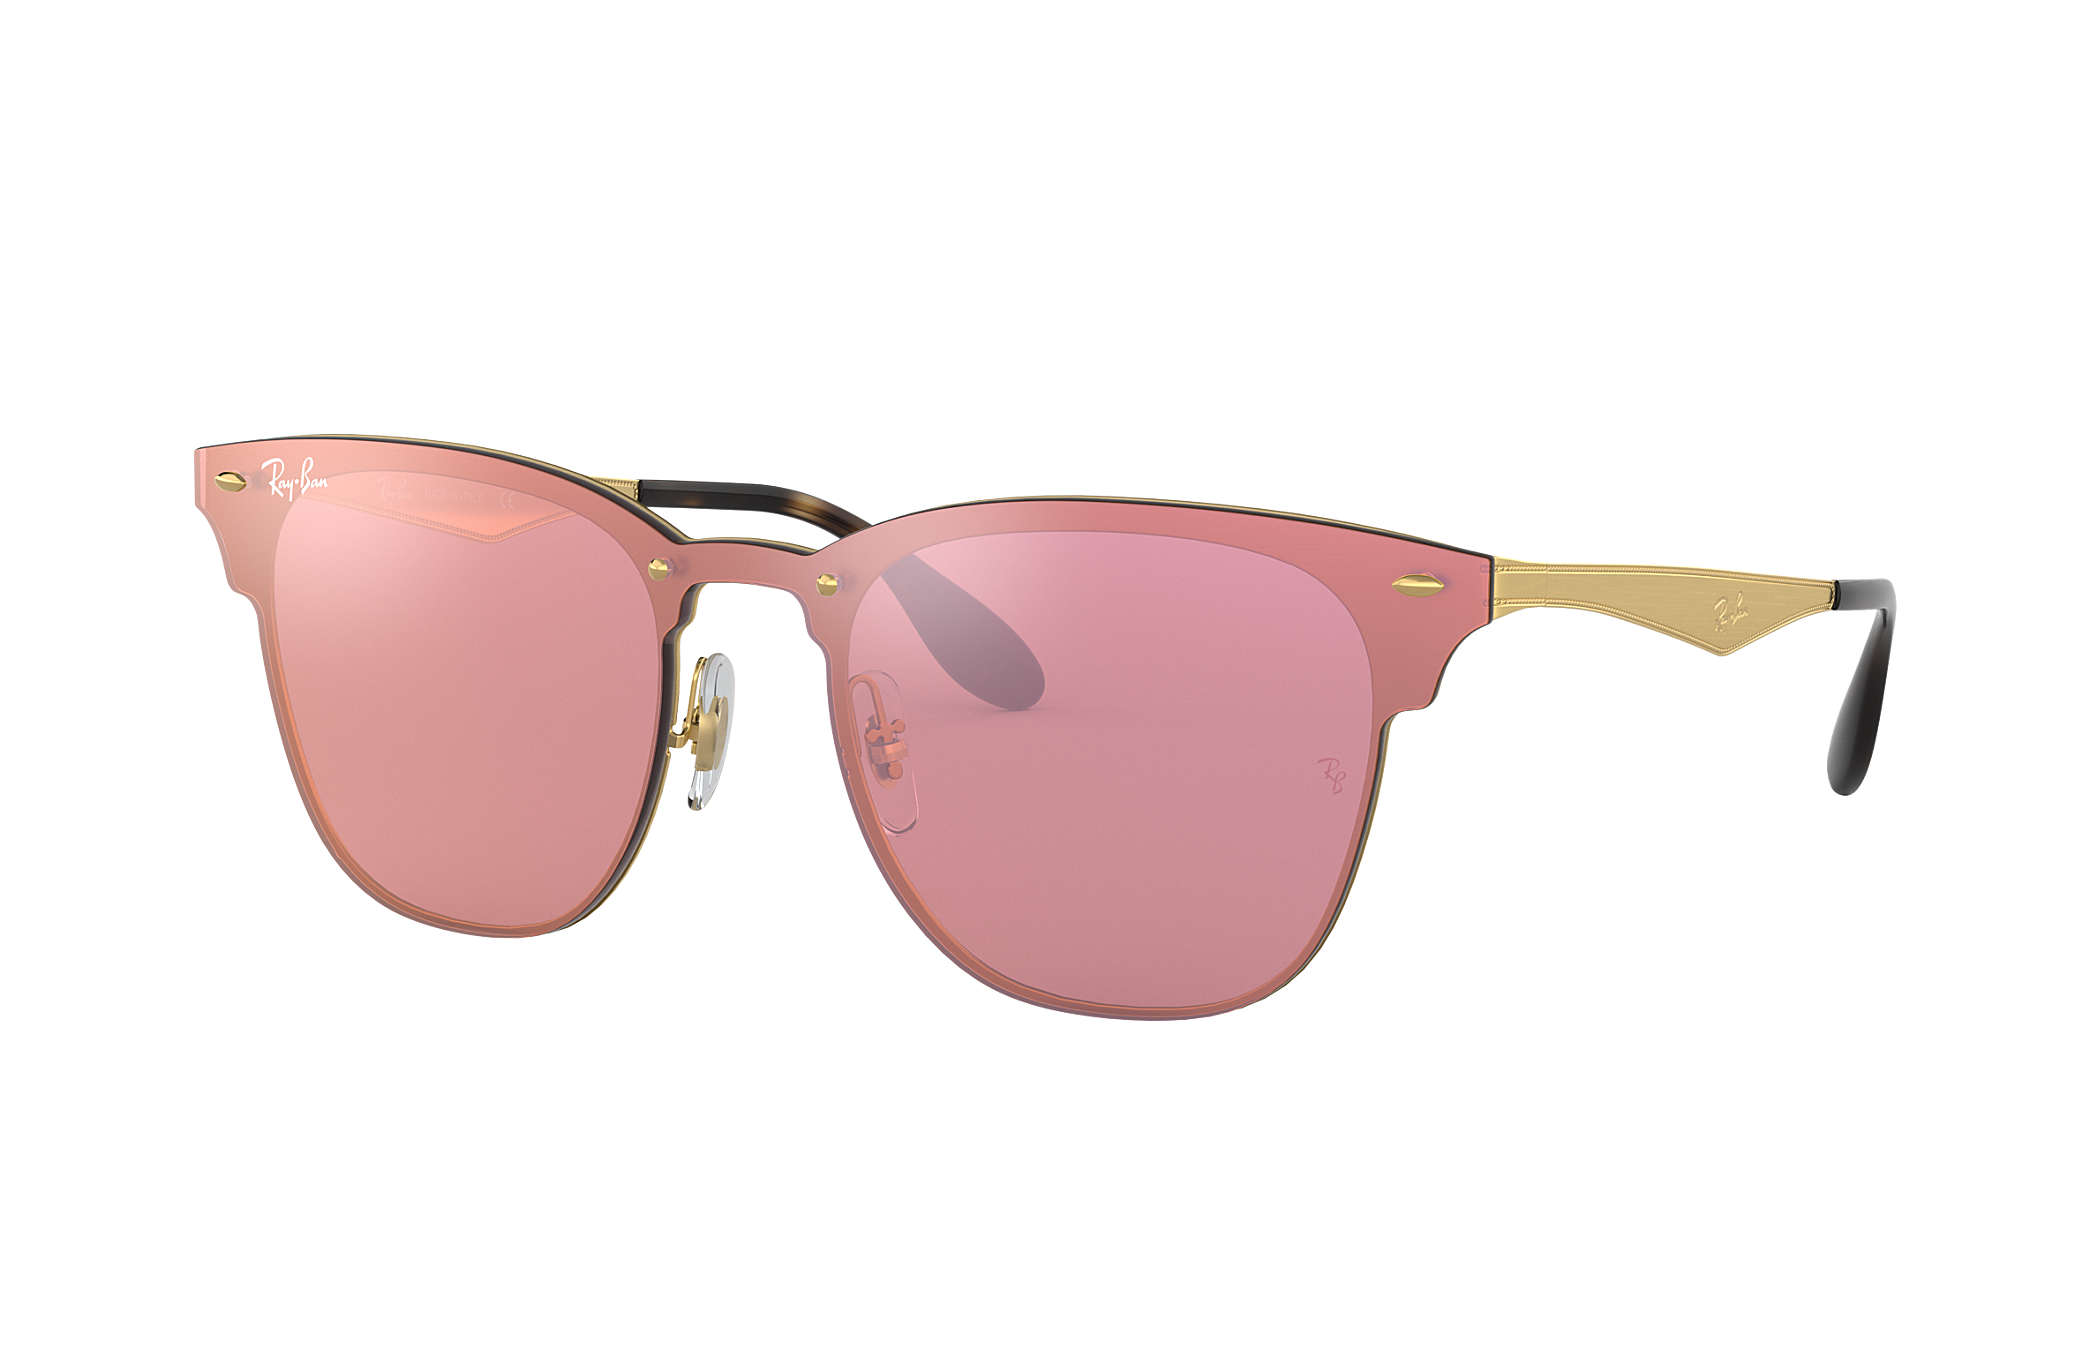 65f48830cdd7d Ray-Ban Blaze Clubmaster RB3576N Ouro - Metal - Lentes Rosa ...